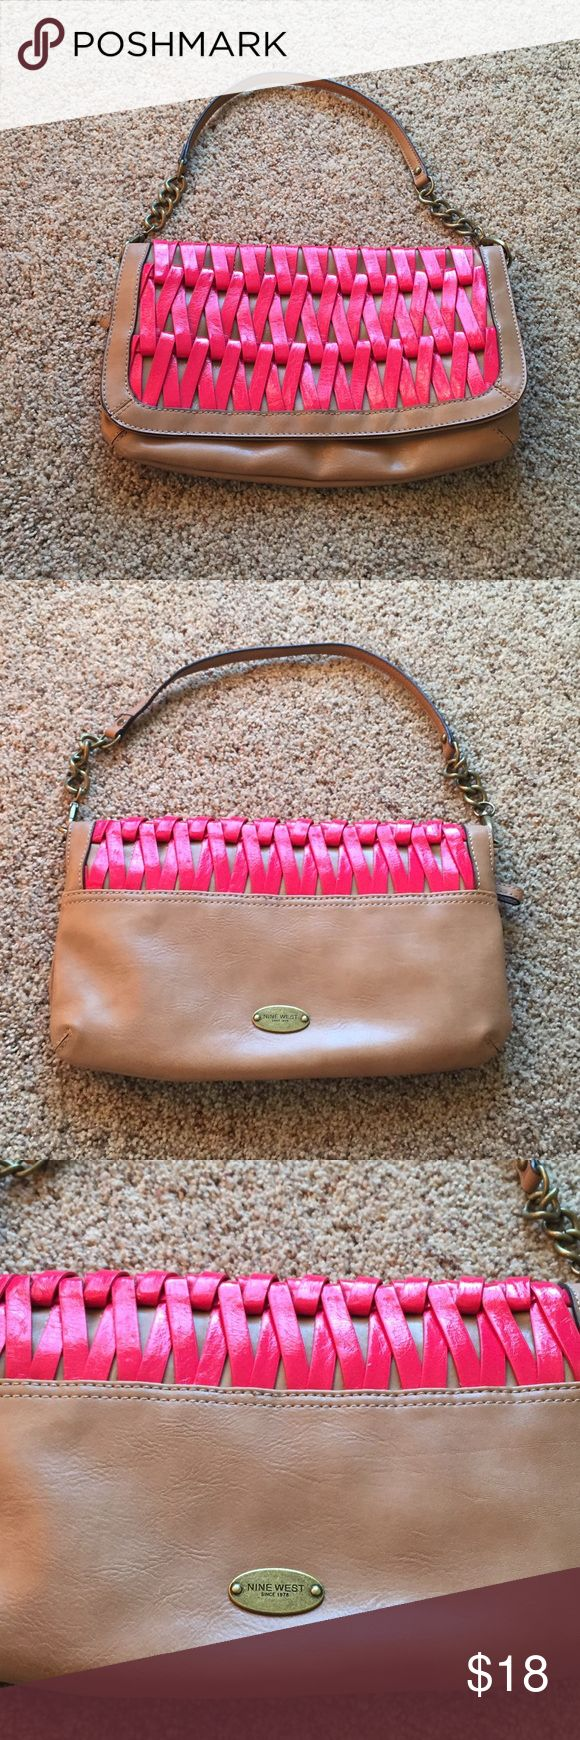 NWOT Nine West purse NWOT Nine West purse | excellent condition as never been used | magnetic closure | 2 inside zippers | great purse for summer Nine West Bags Shoulder Bags